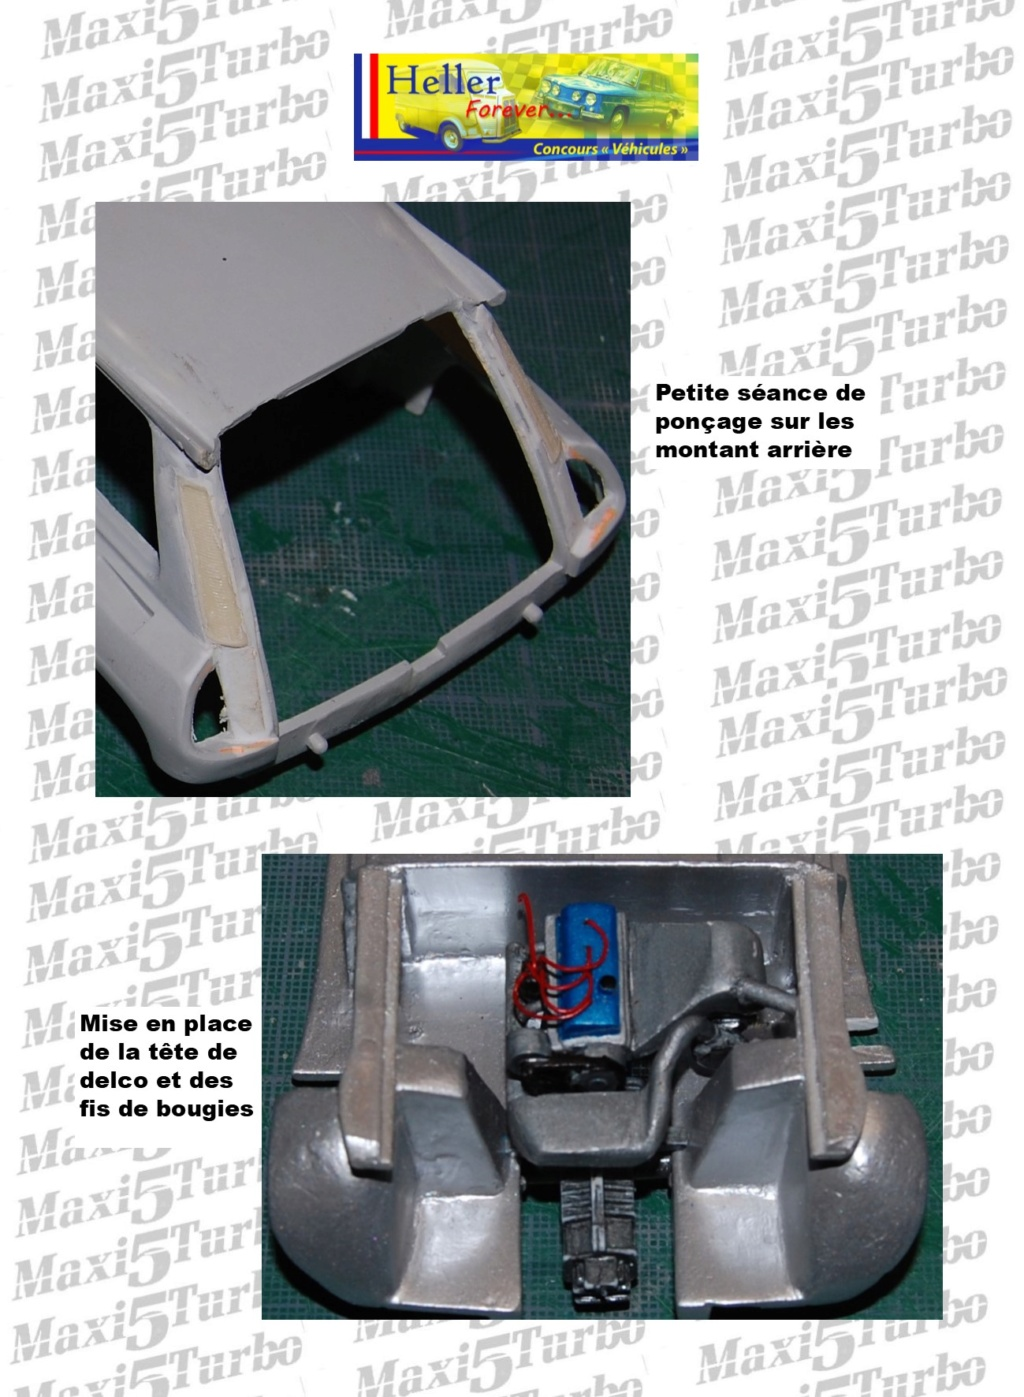 (1/24) Renault 5 Maxi turbo Ref 80717 ( Hors delai ) - Page 12 19010